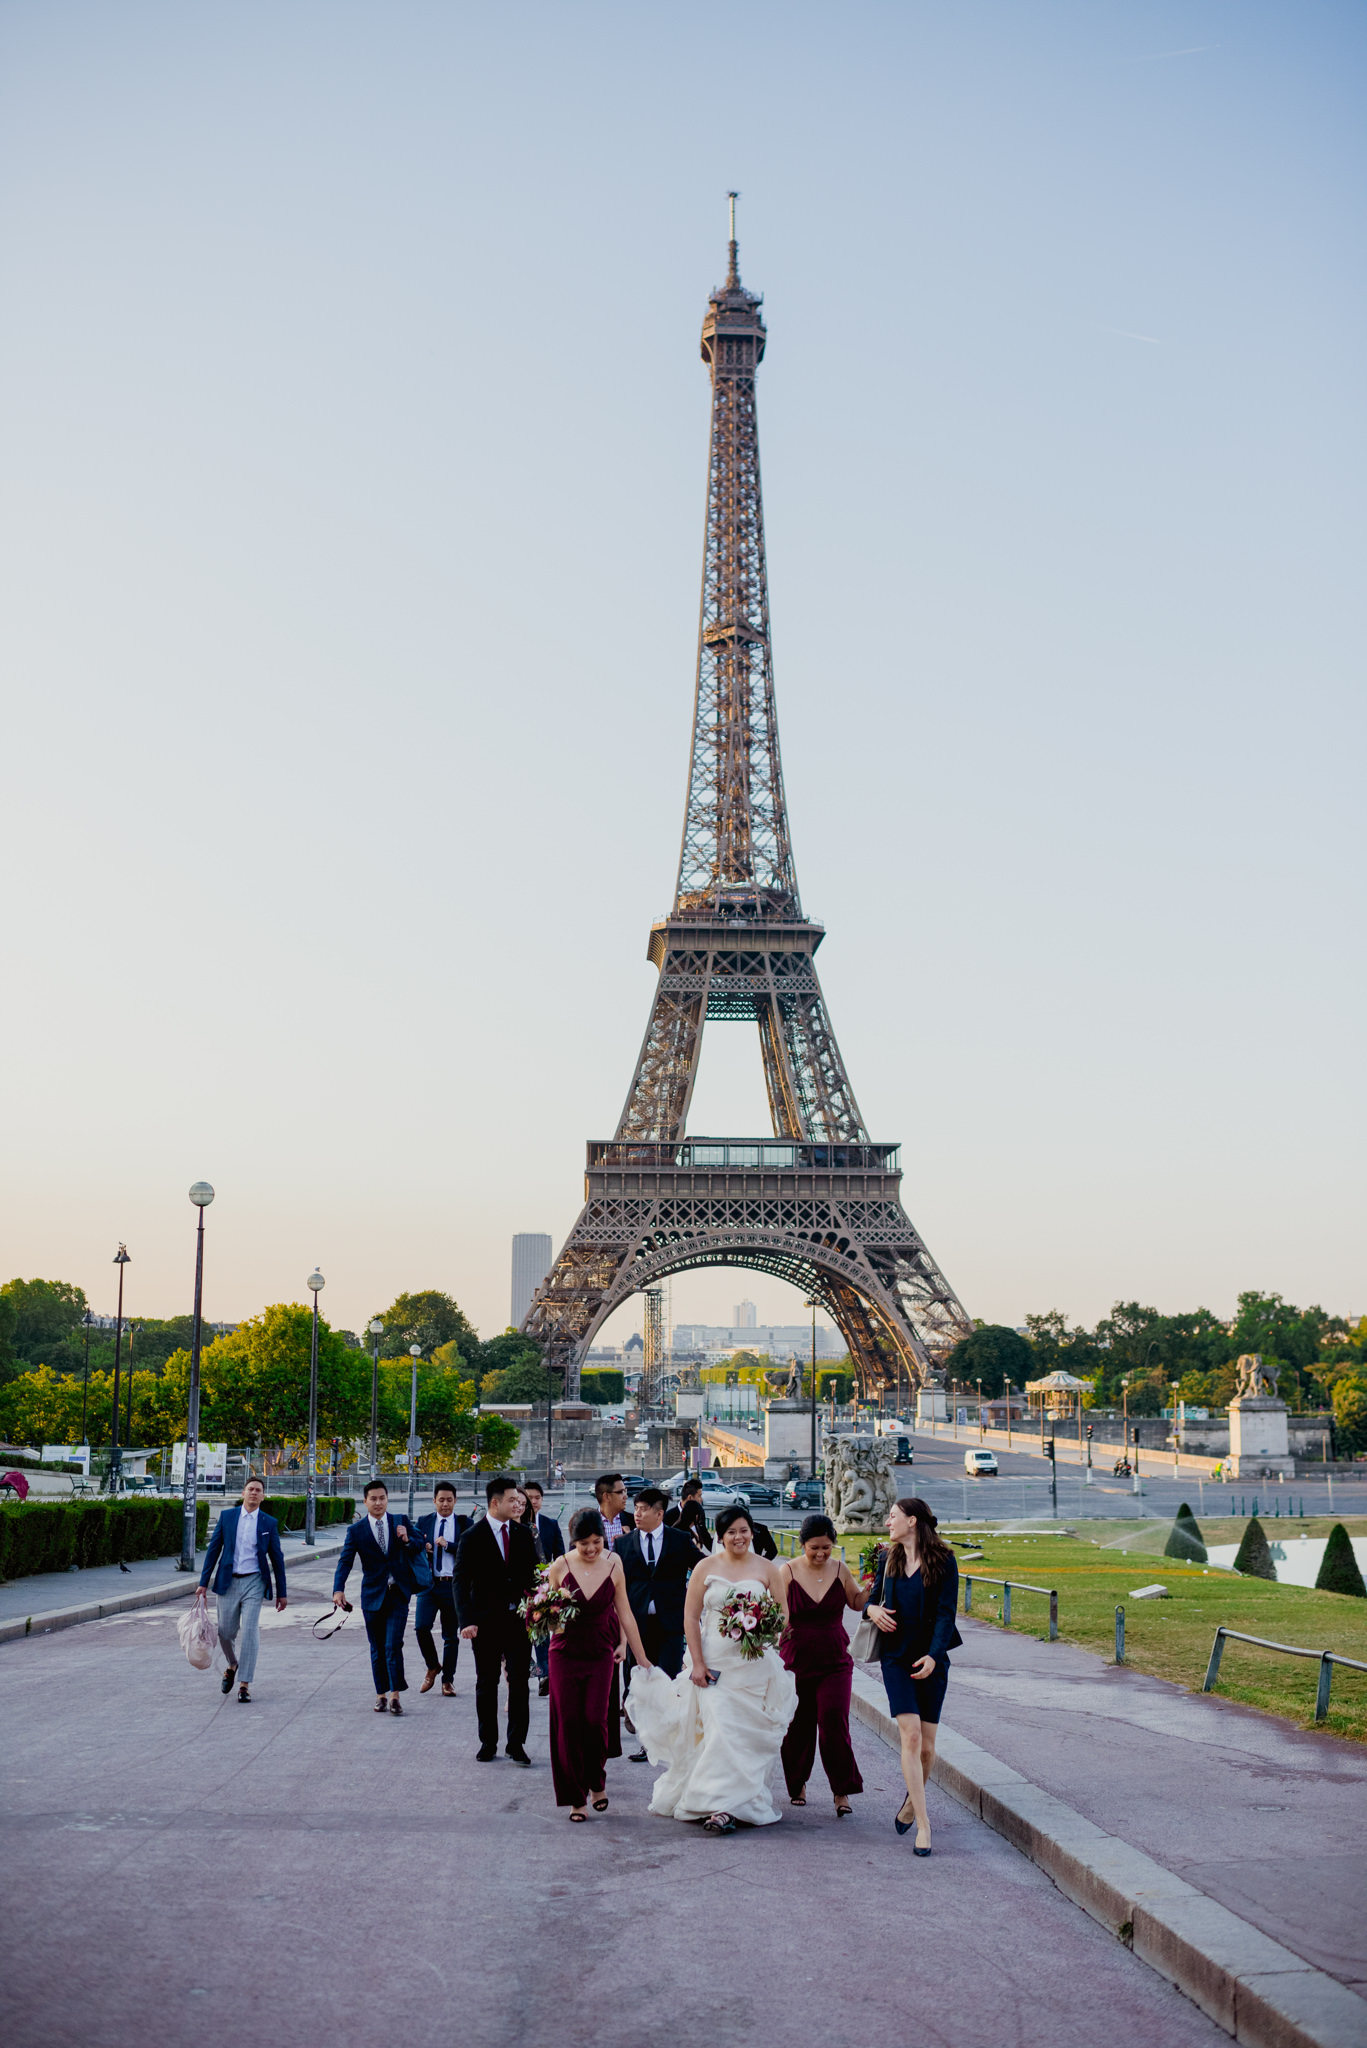 A bridal party walks up a hill with the Eiffel Tower behind them.